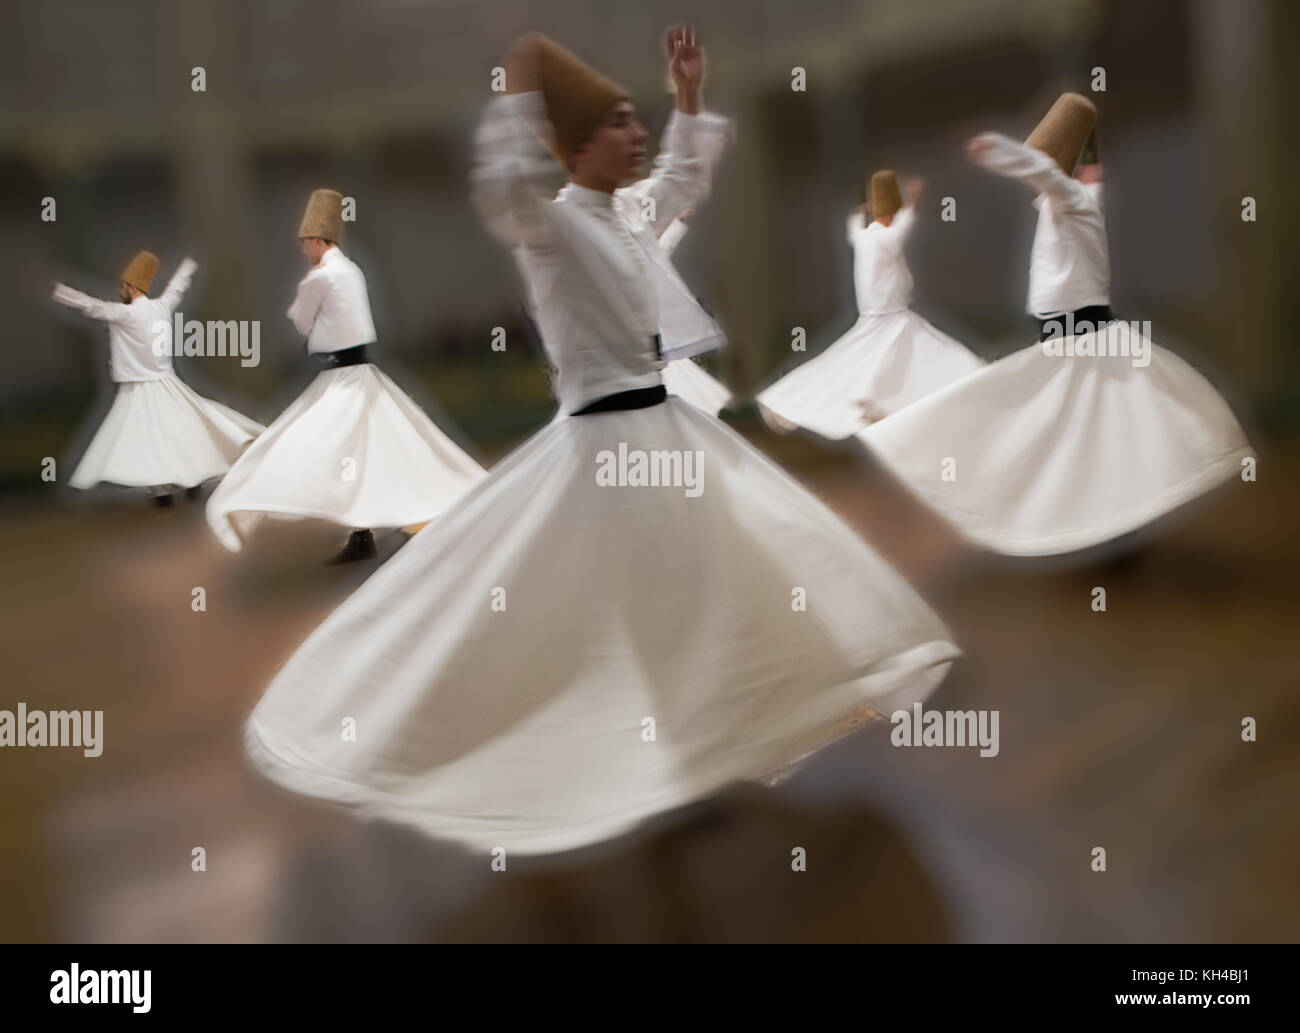 Whirling Dervishes practice their dance in Istanbul, Turkey on Apr 30, 2016 - Stock Image